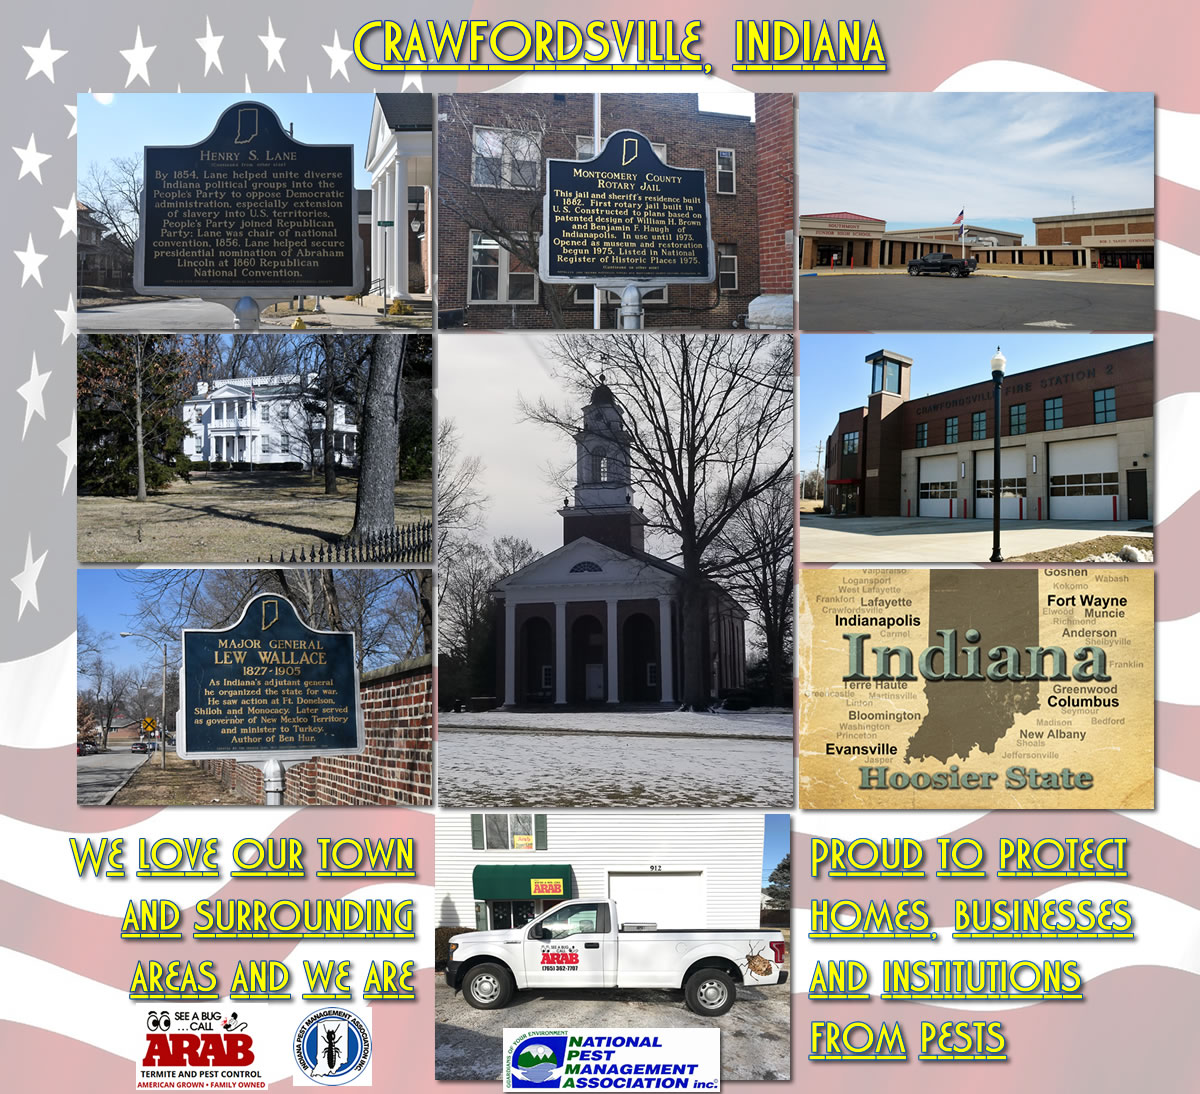 Crawfordsville, Indiana collage